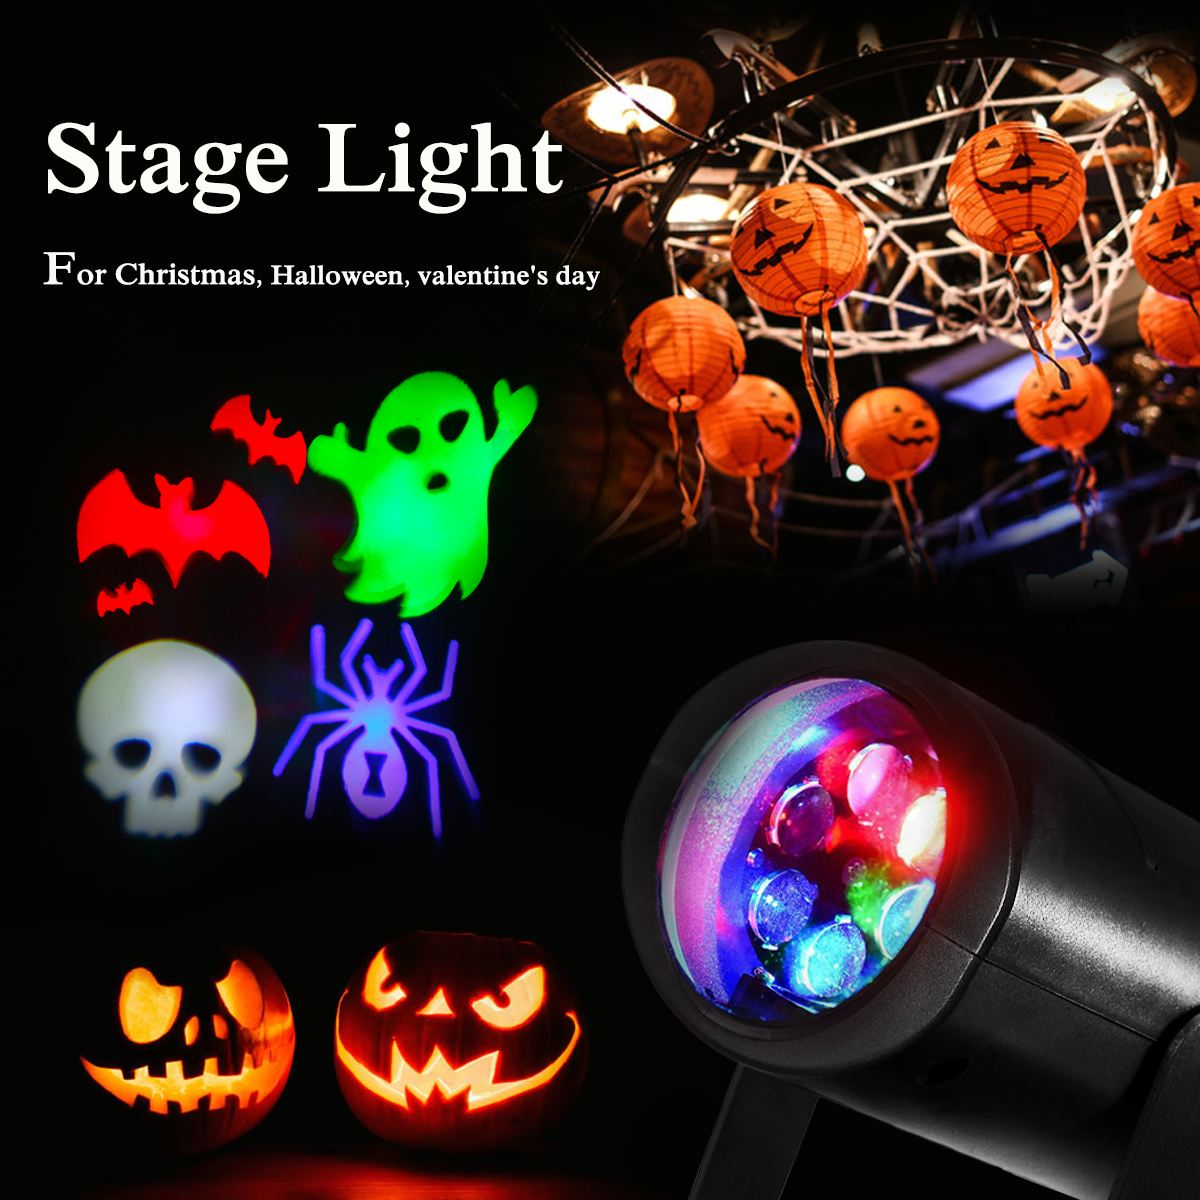 LED Laser Projector Lamps Stage Light Heart Snow Spider Bowknot Pattern Halloween Christmas Party Lamp Garden Indoor Lighting